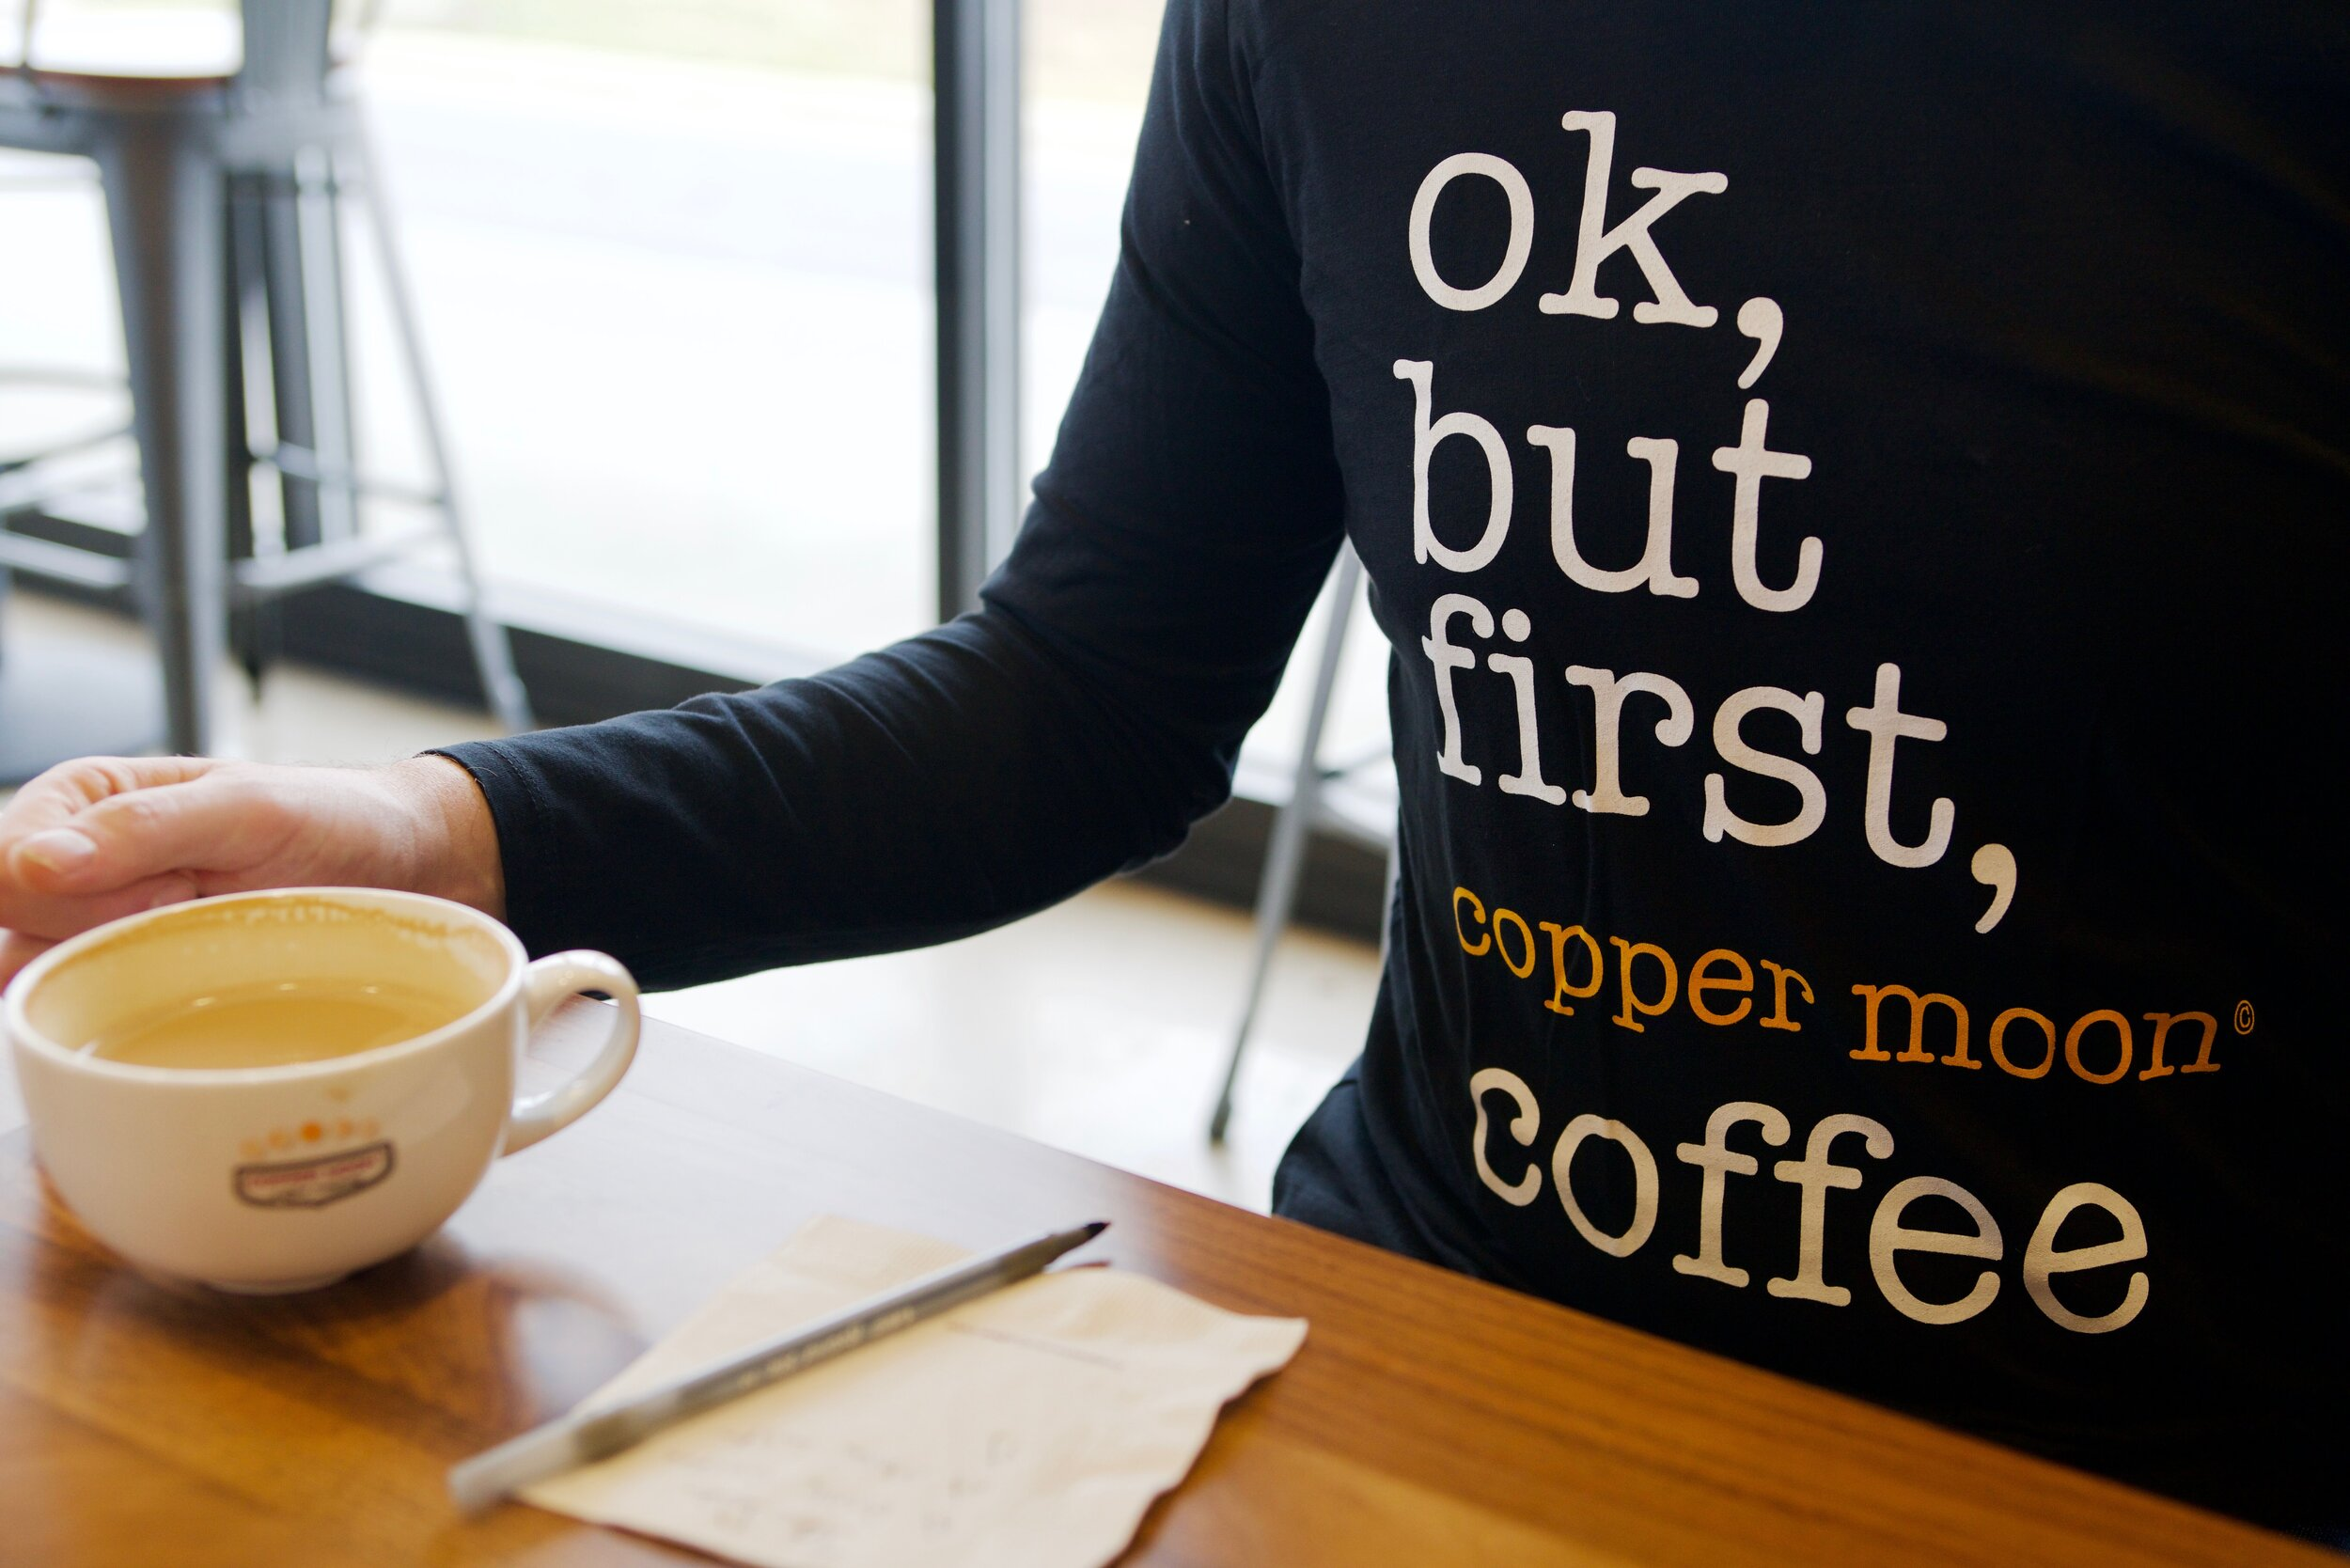 Coffee Blog - Check out what is going on at Copper Moon Coffee!